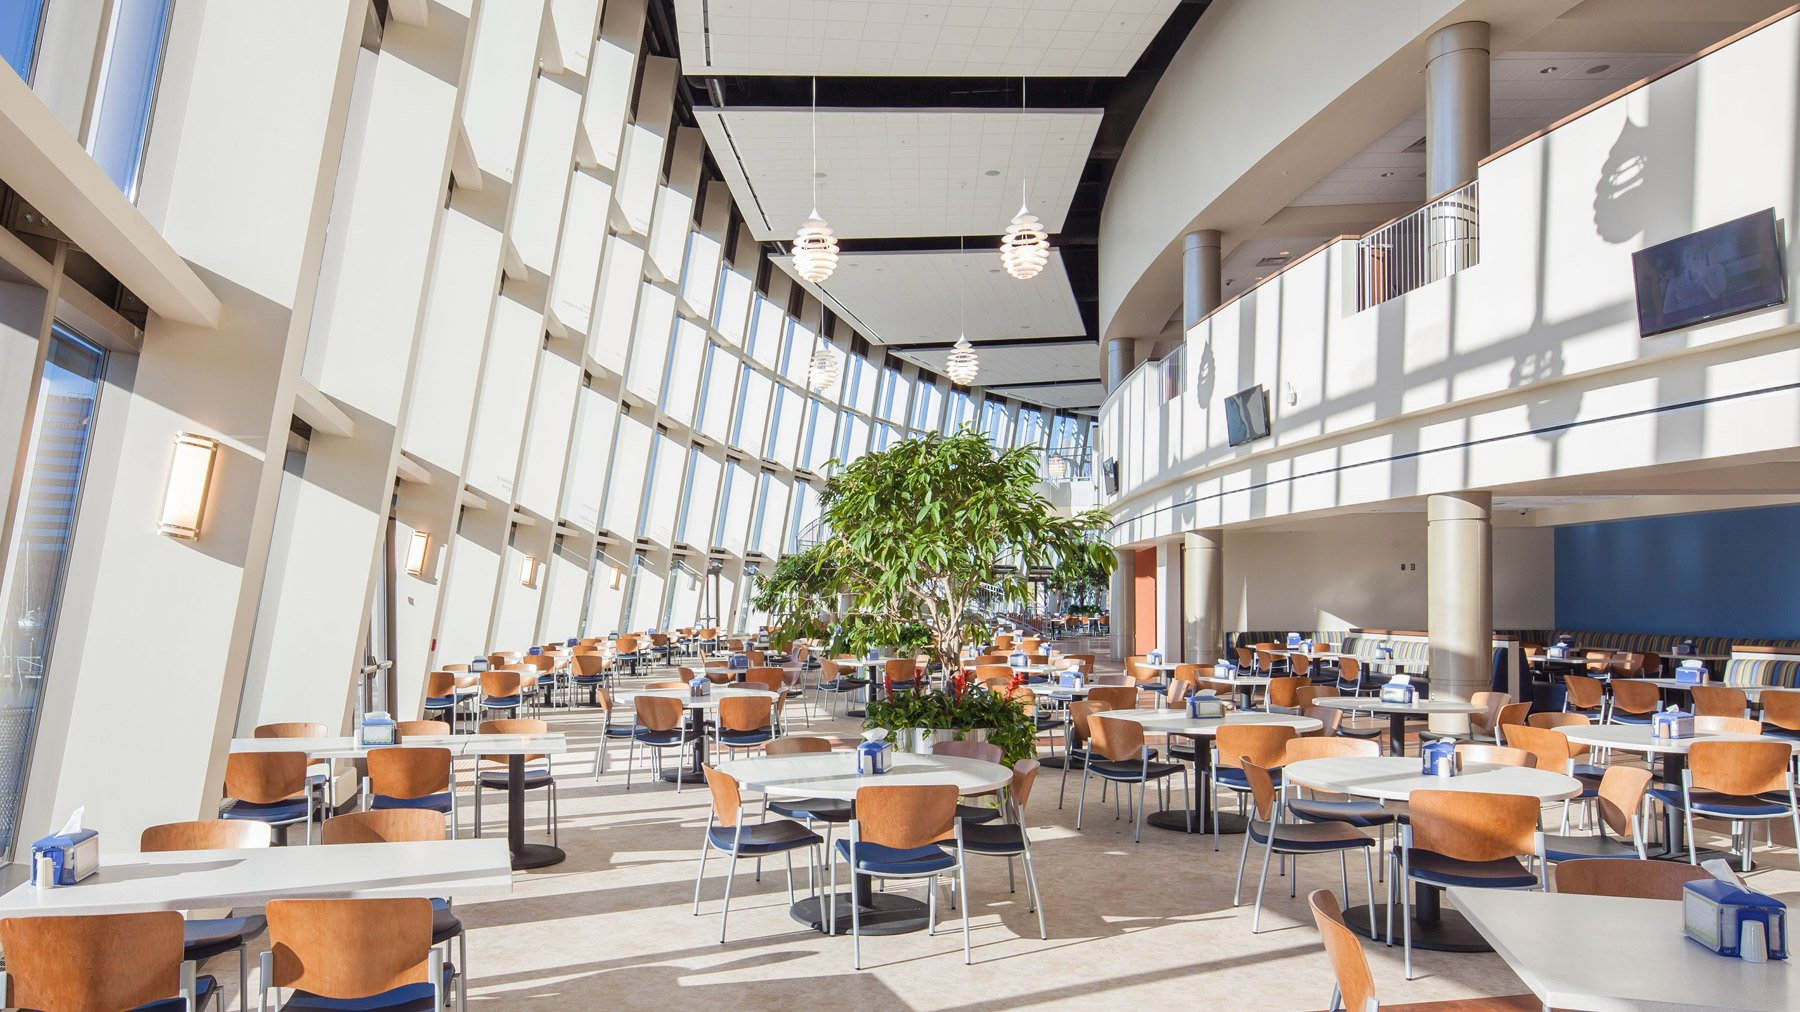 Hillsman Hospitality projects - Hotels Restaurants Airline Lounges Dormitories Student Dining